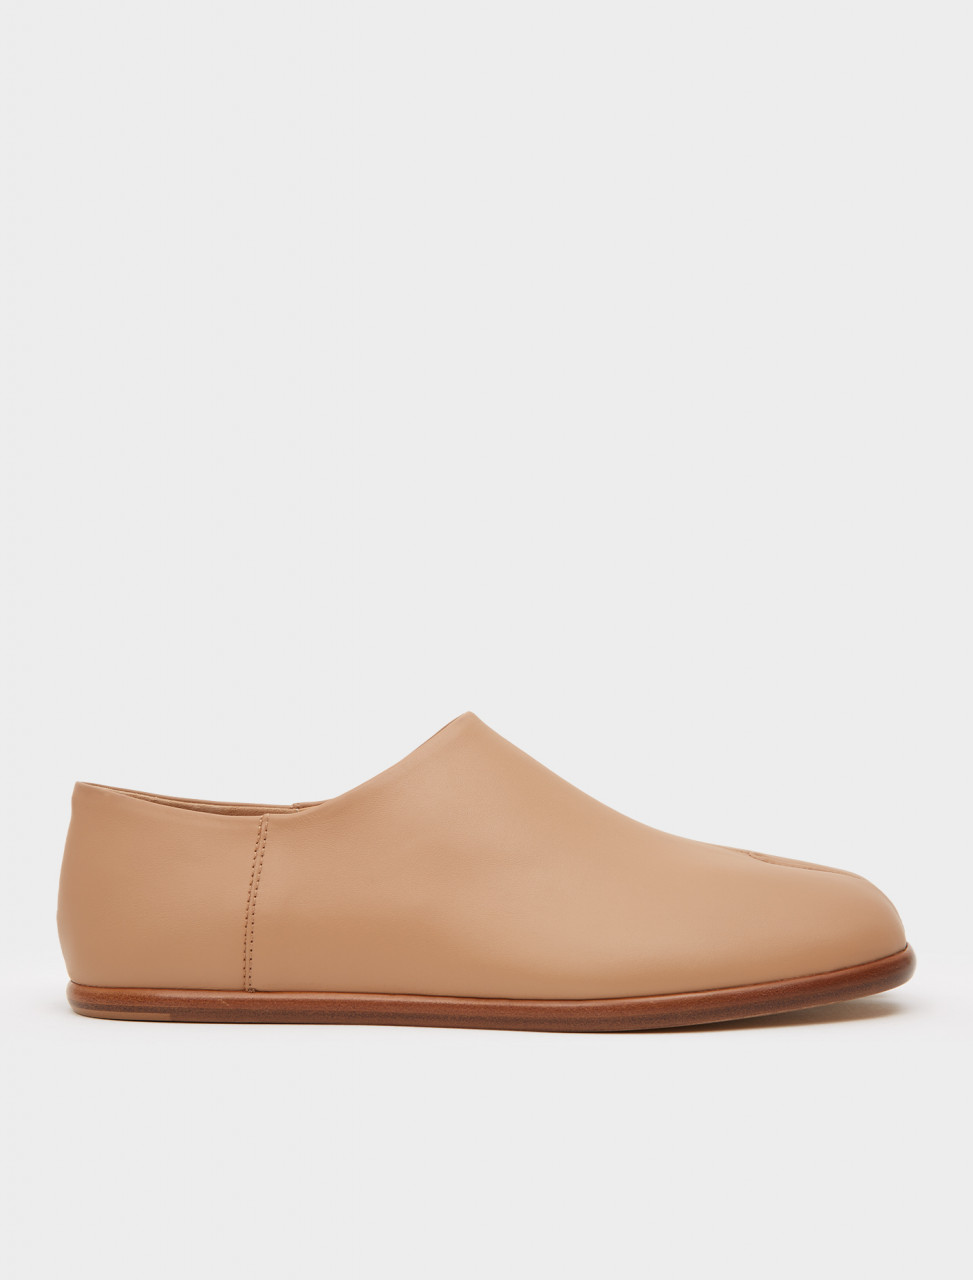 256-S57WR0051-PR516-T9004 MAISON MARGIELA TABI LEATHER SLIP ON NUDE